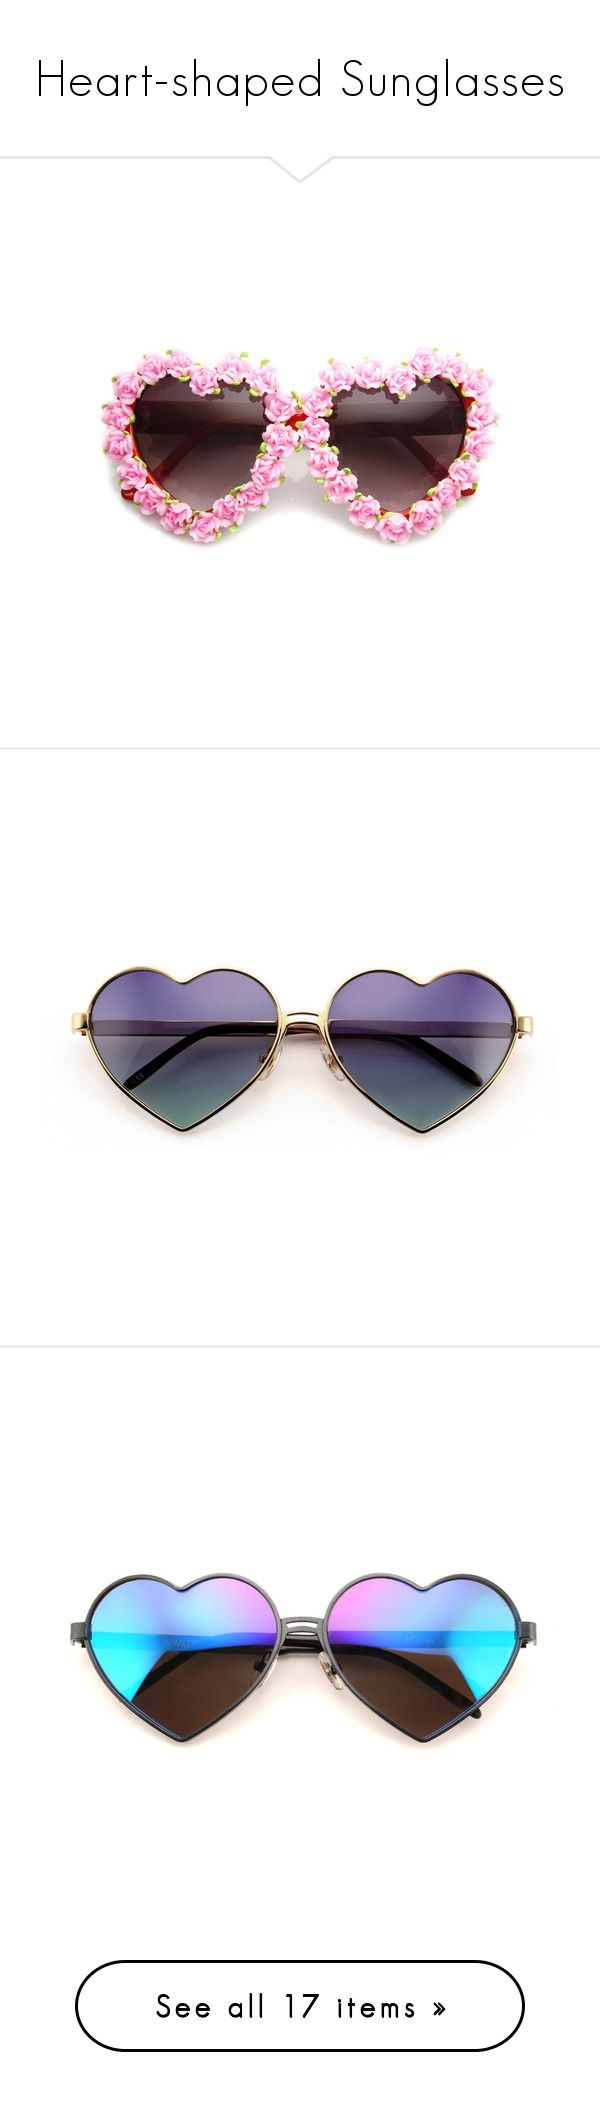 """""""Heart-shaped Sunglasses"""" by emmas-fashion-diary ❤ liked on Polyvore featuring accessories, eyewear, sunglasses, glasses, fillers, beach sunglasses, summer sunglasses, summer glasses, eyeglasses and lens glasses"""